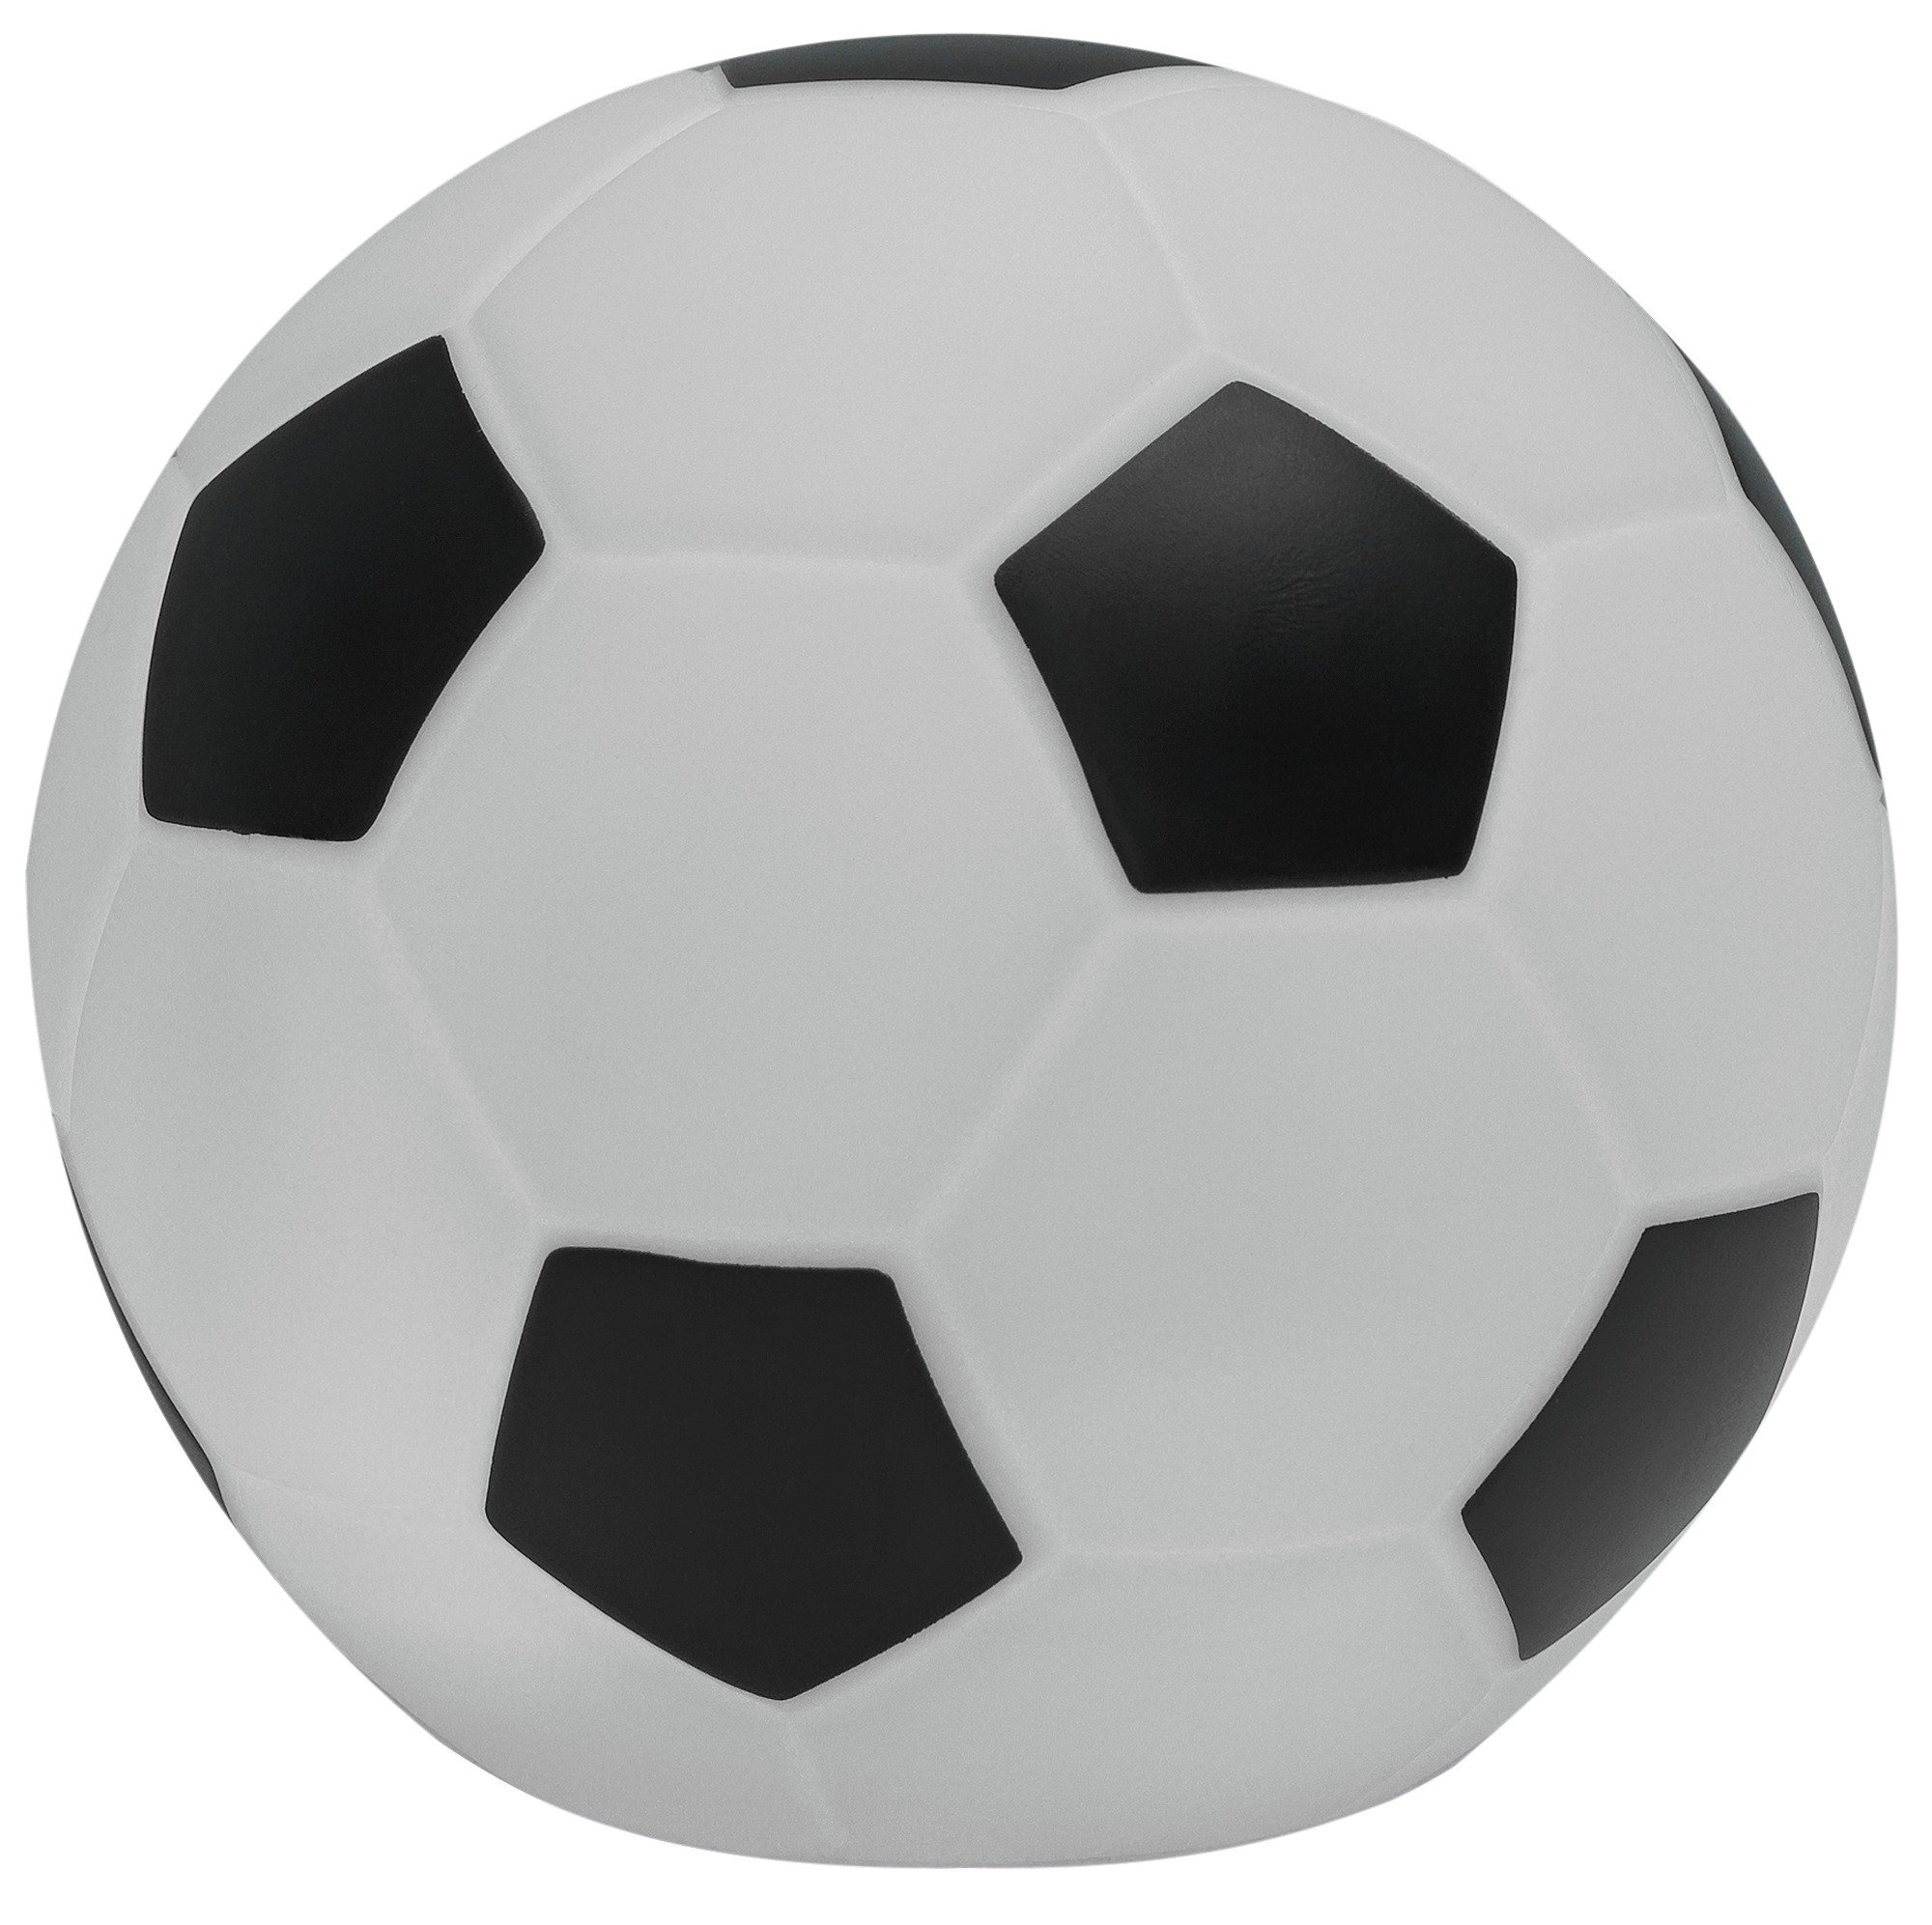 Colour Changing Football Light lowest price